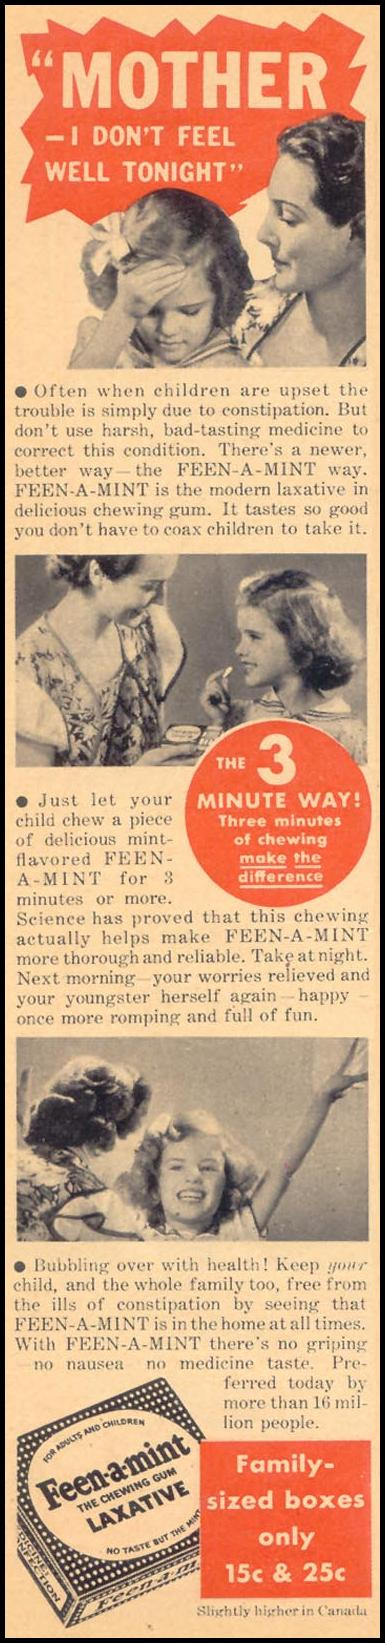 FEEN-A-MINT CHEWING GUM LAXATIVE LIBERTY 11/28/1936 p. 58